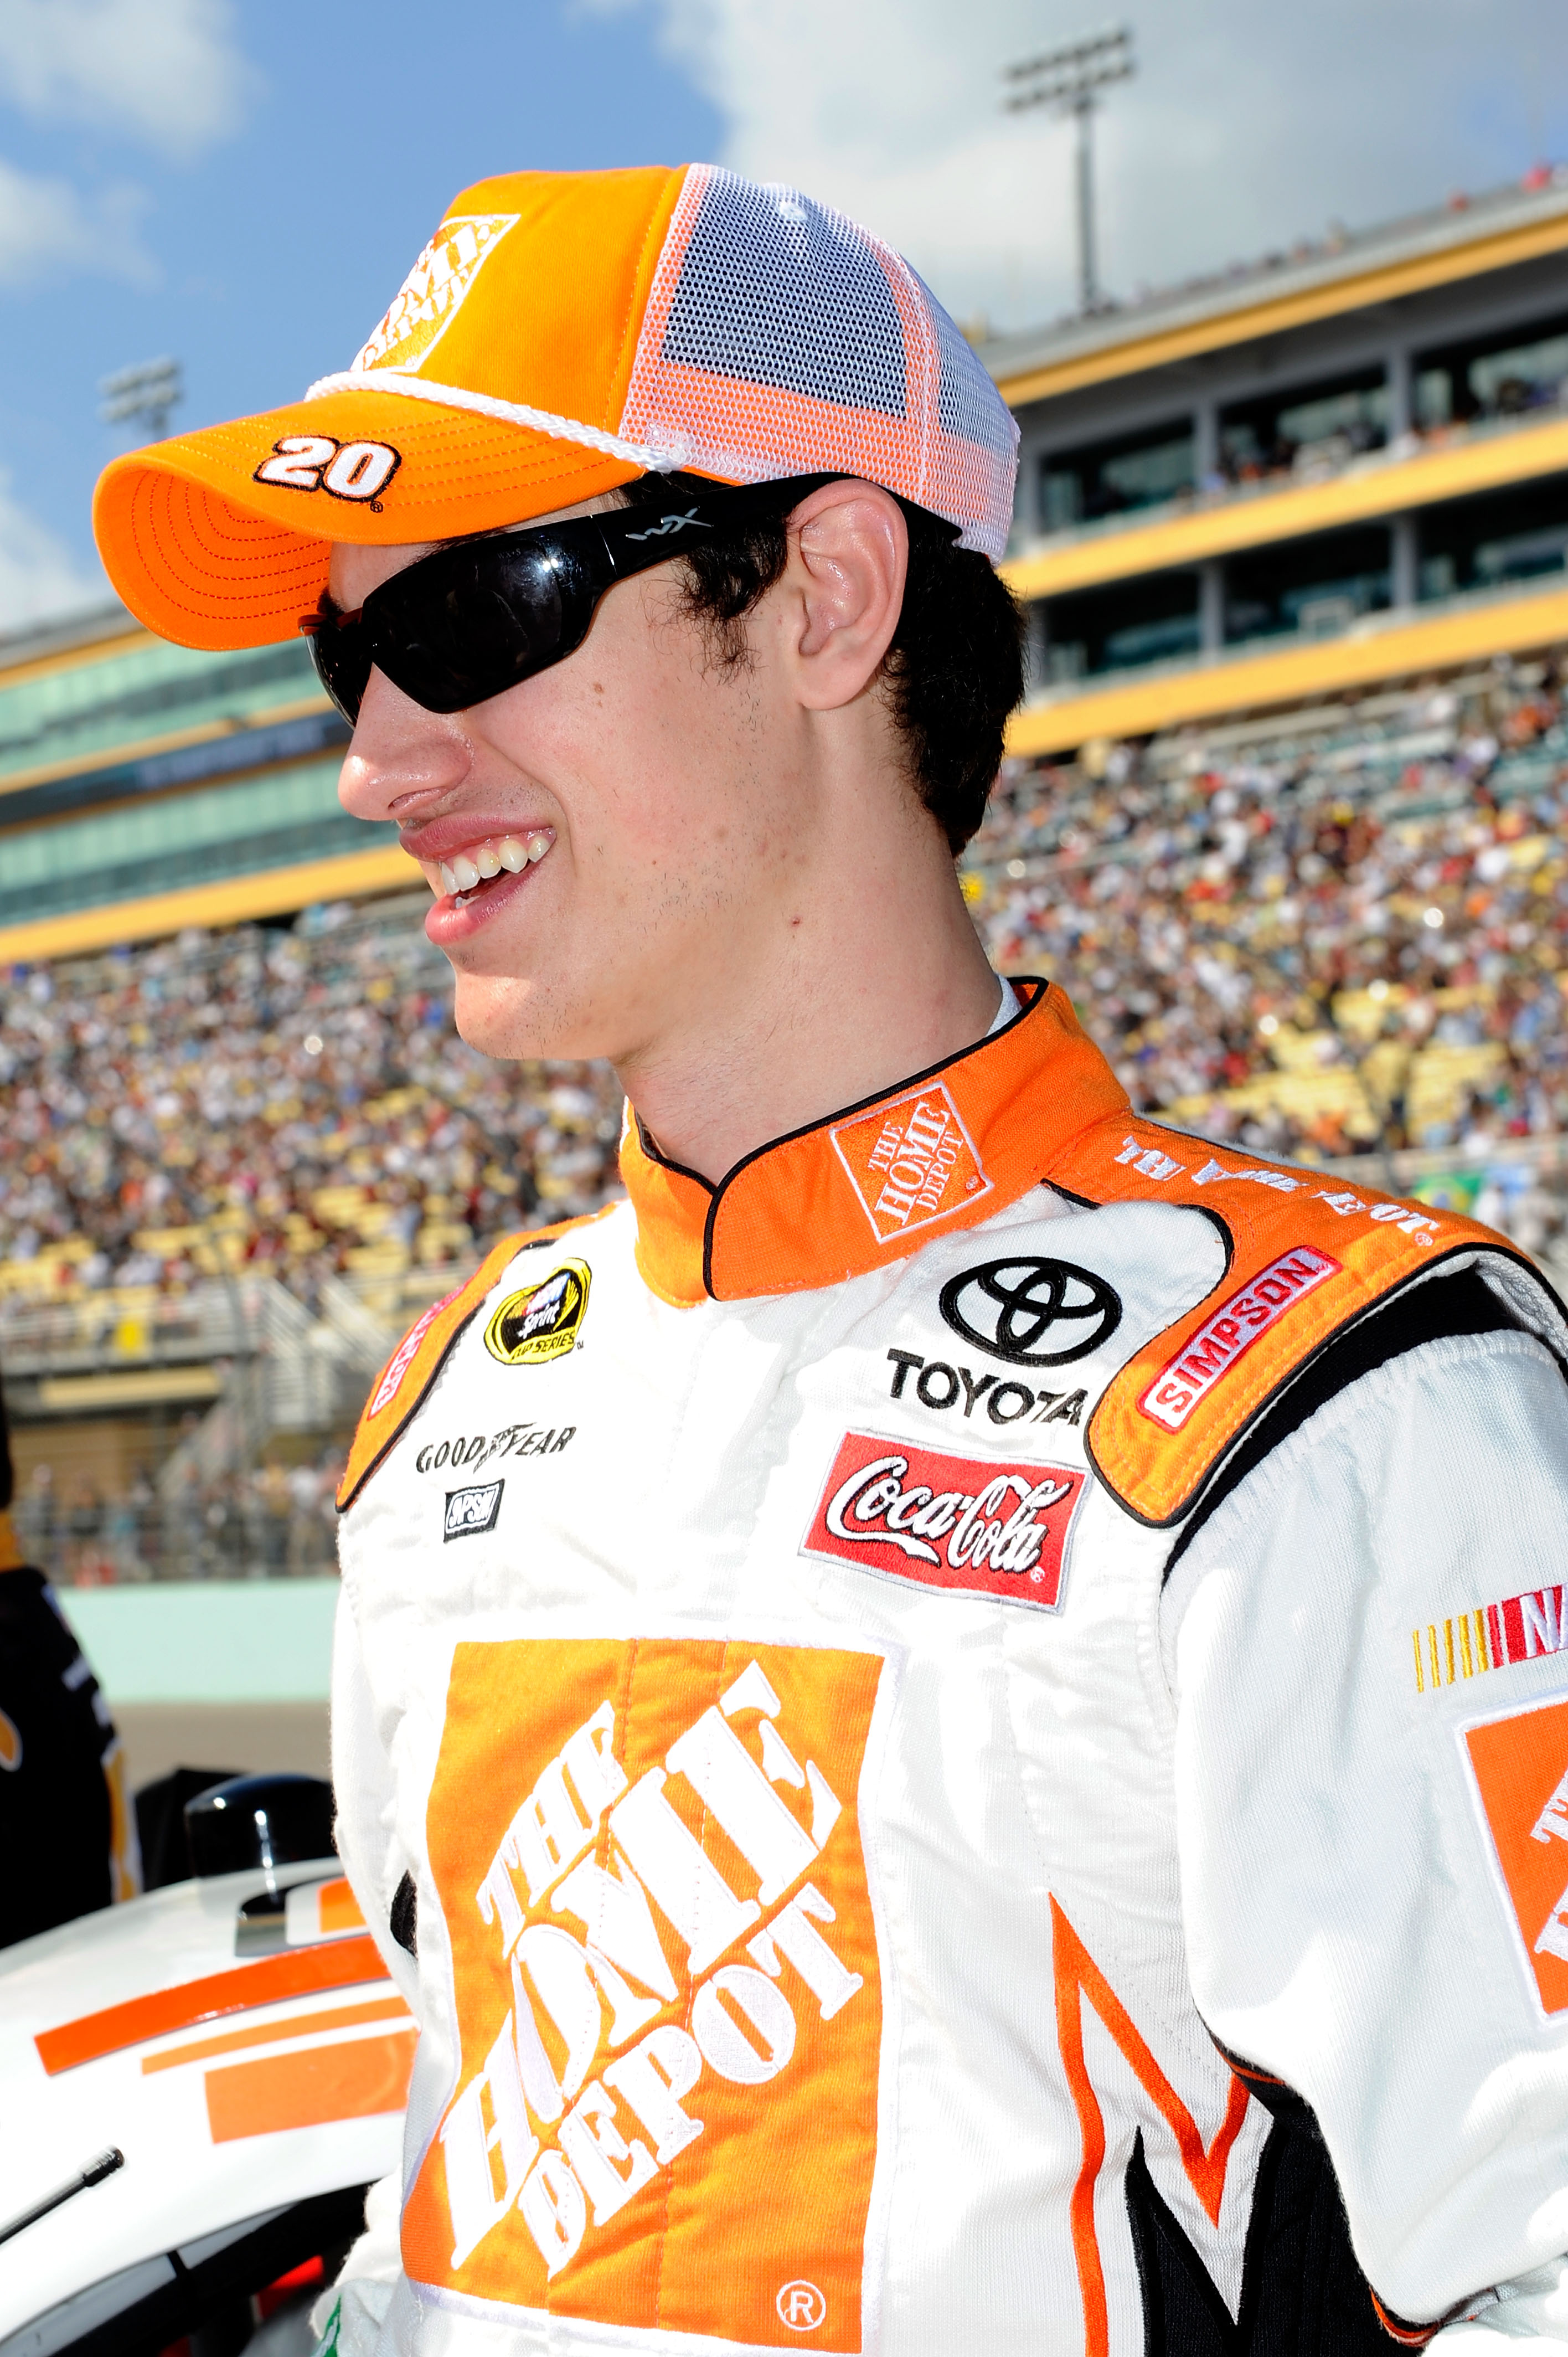 HOMESTEAD, FL - NOVEMBER 21:  Joey Logano, driver of the #20 Home Depot Toyota, stands on pit road prior to the NASCAR Sprint Cup Series Ford 400 at Homestead-Miami Speedway on November 21, 2010 in Homestead, Florida.  (Photo by John Harrelson/Getty Image